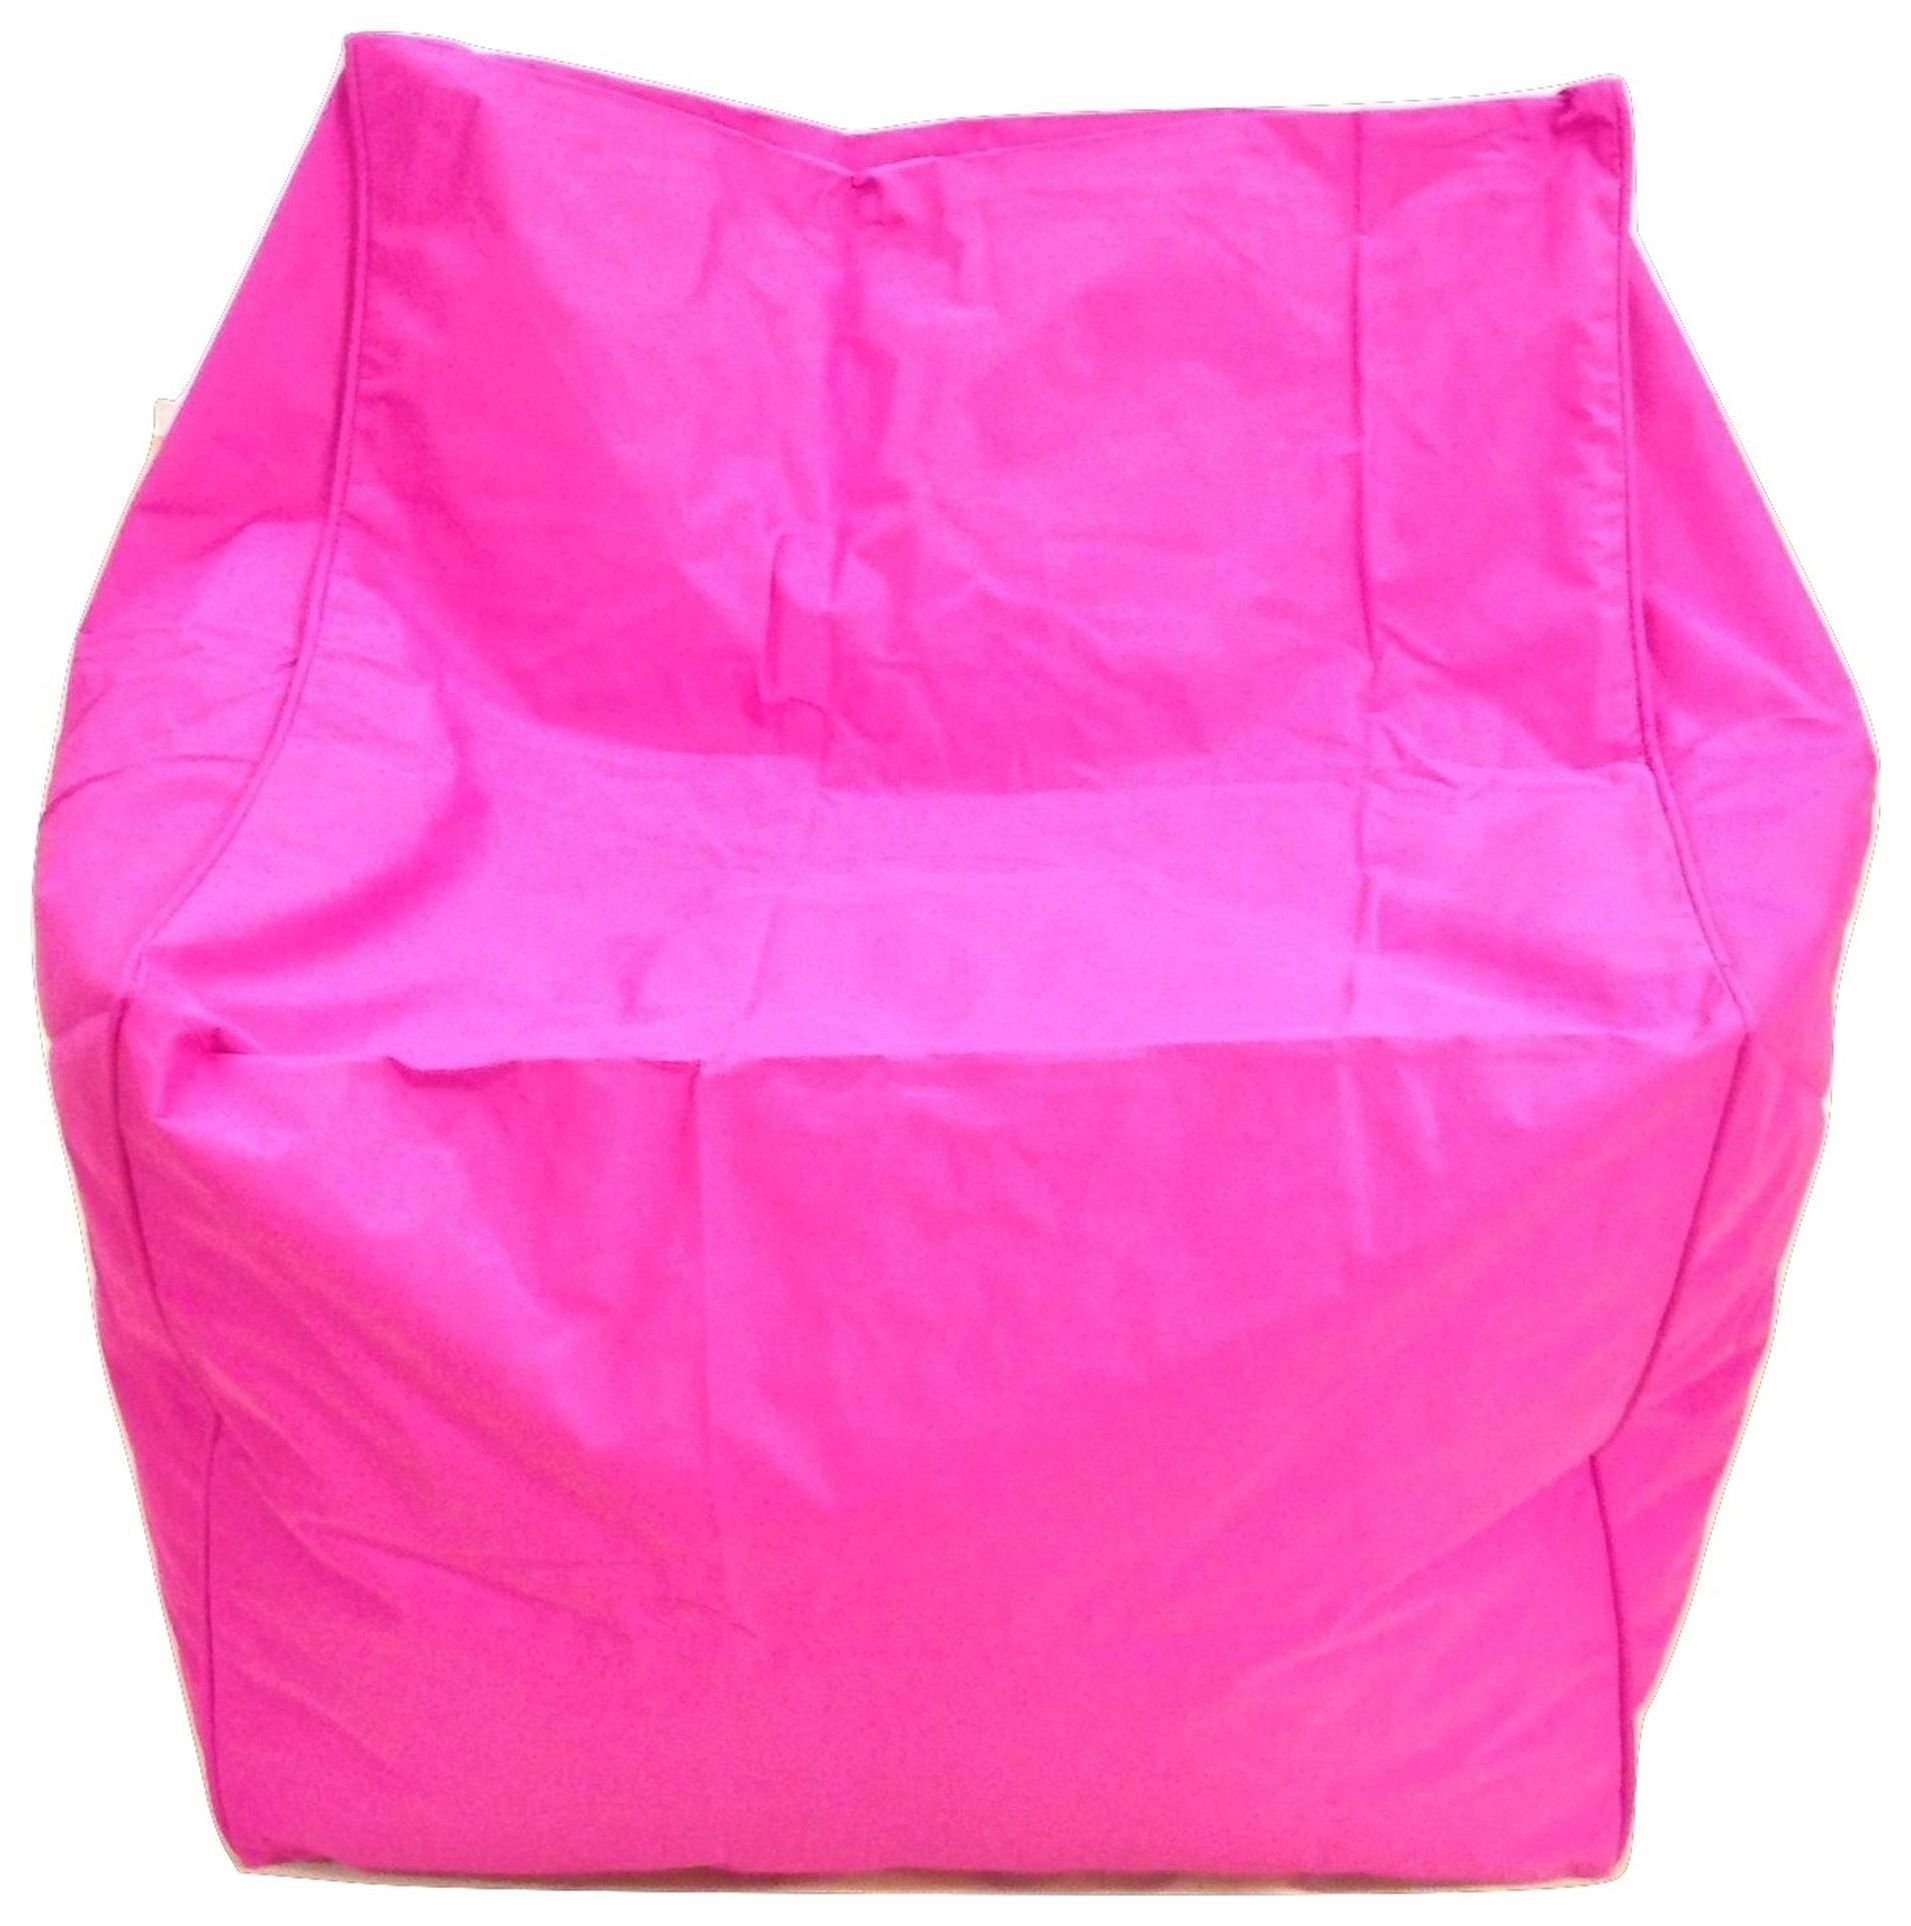 Kaikoo Chillout Chair - Pink